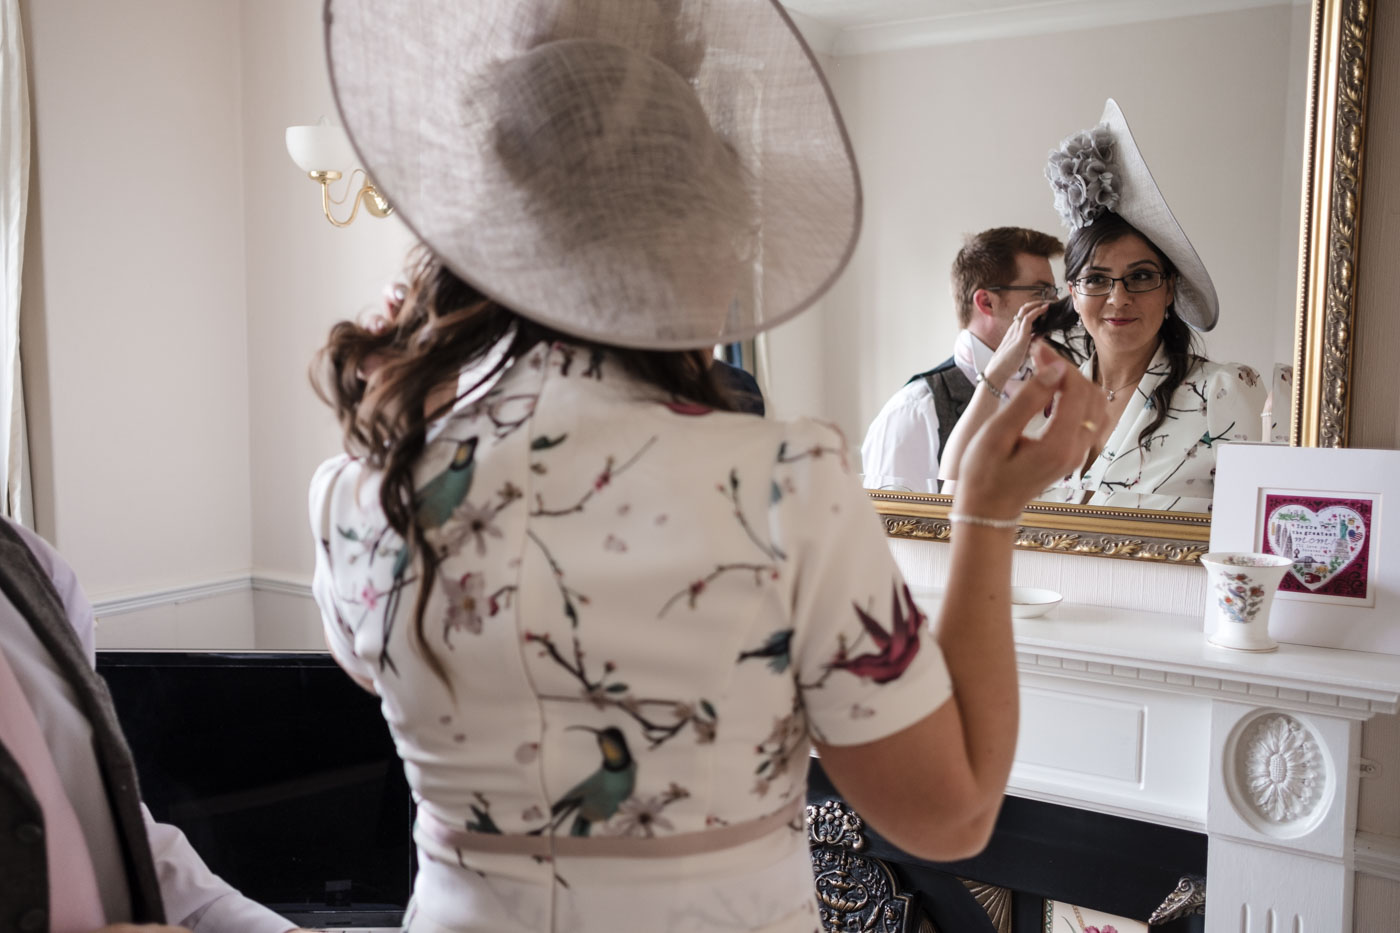 getting ready in the large mirror